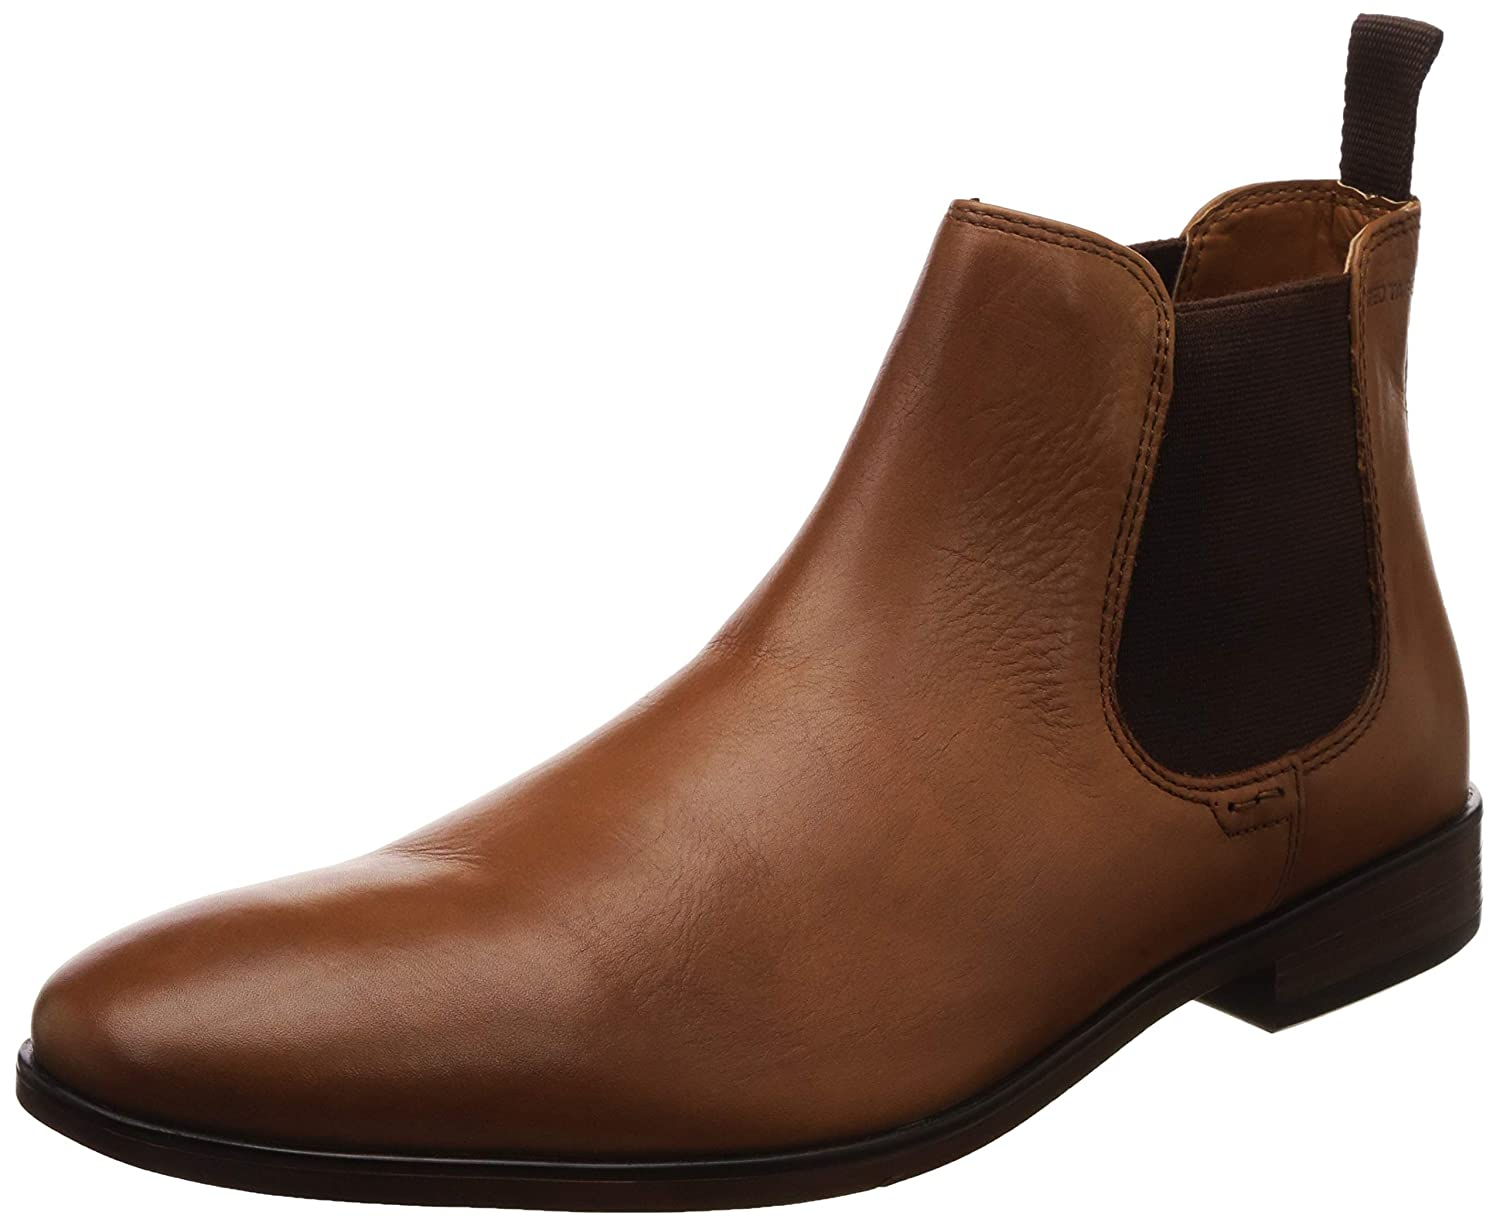 984ce1c1cb5 Red Tape Men's Boots